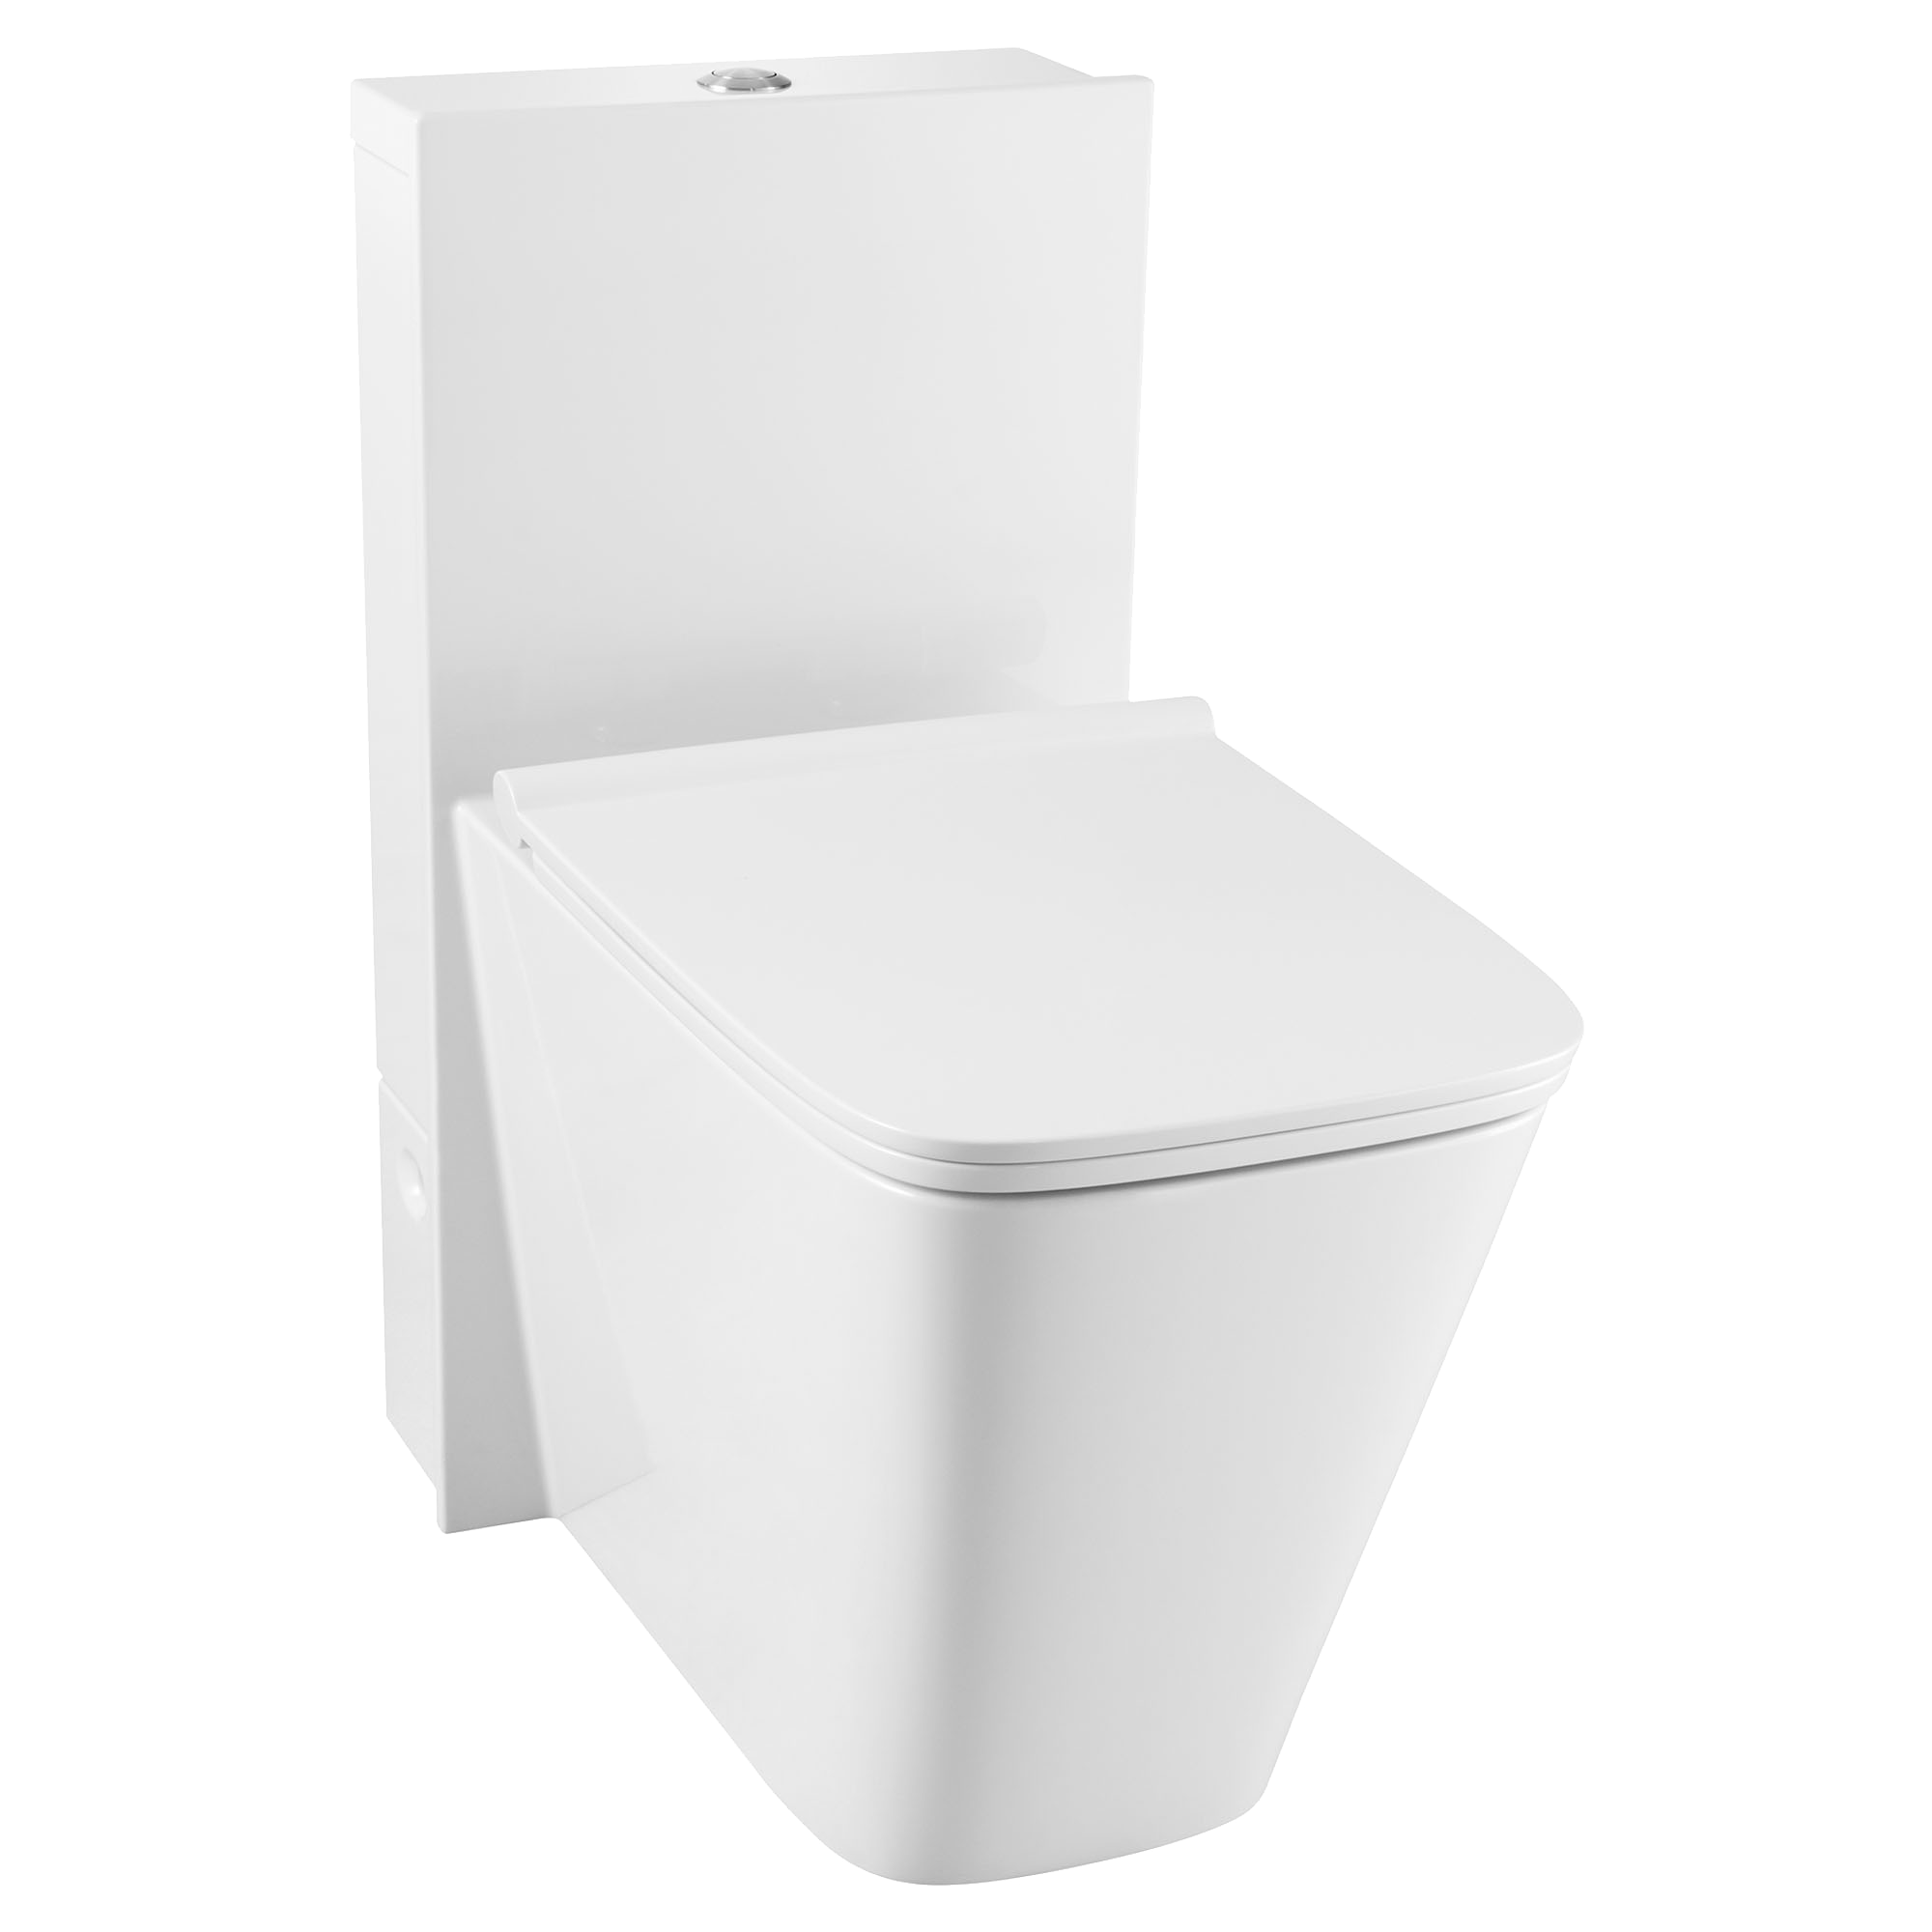 Modulus Monolith Elongated One-Piece Toilet